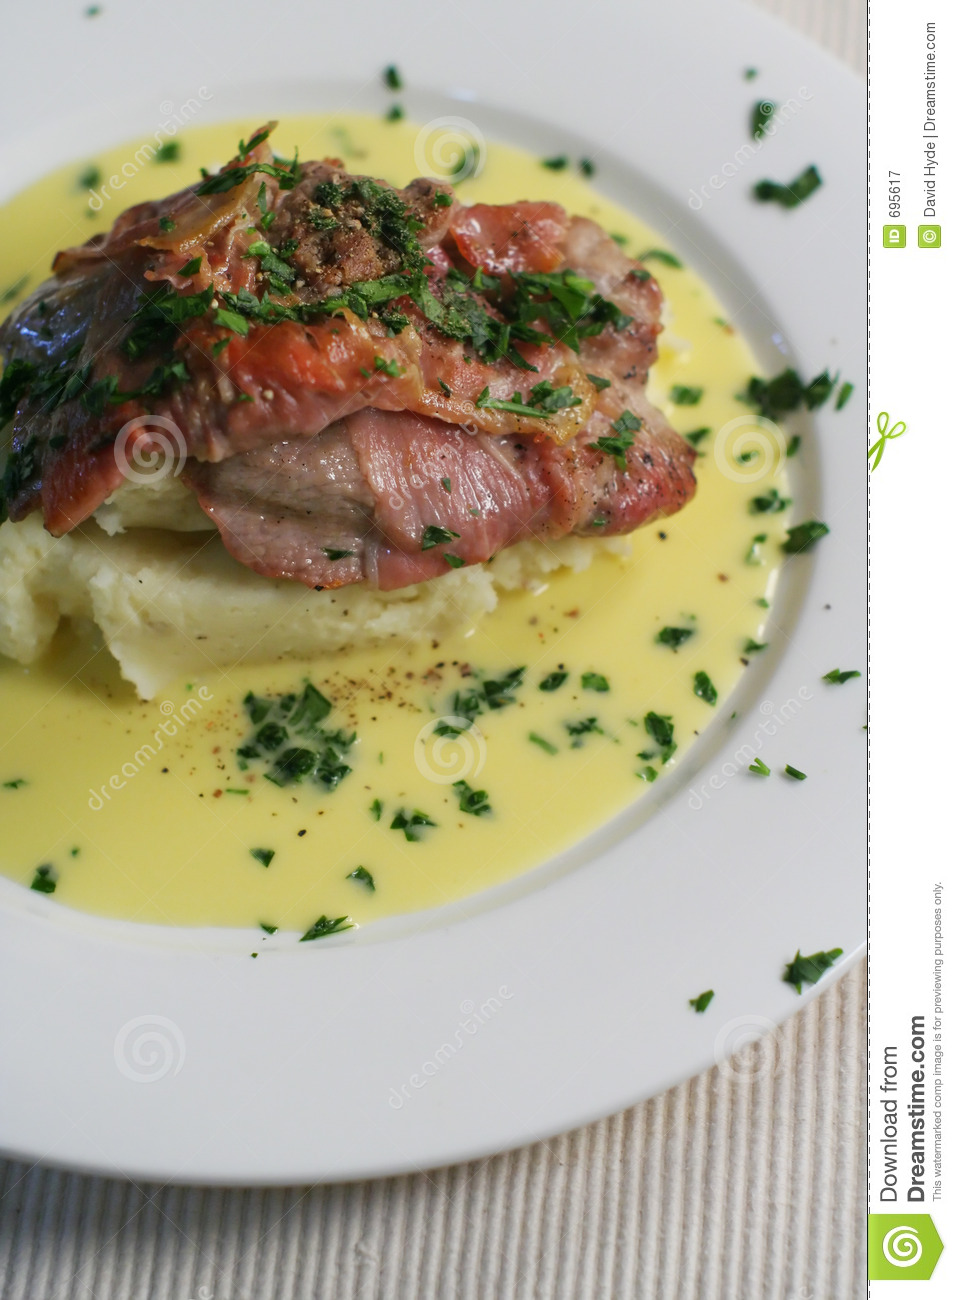 on creamy mash with Beure blanc (butter sauce infused with lemon ...